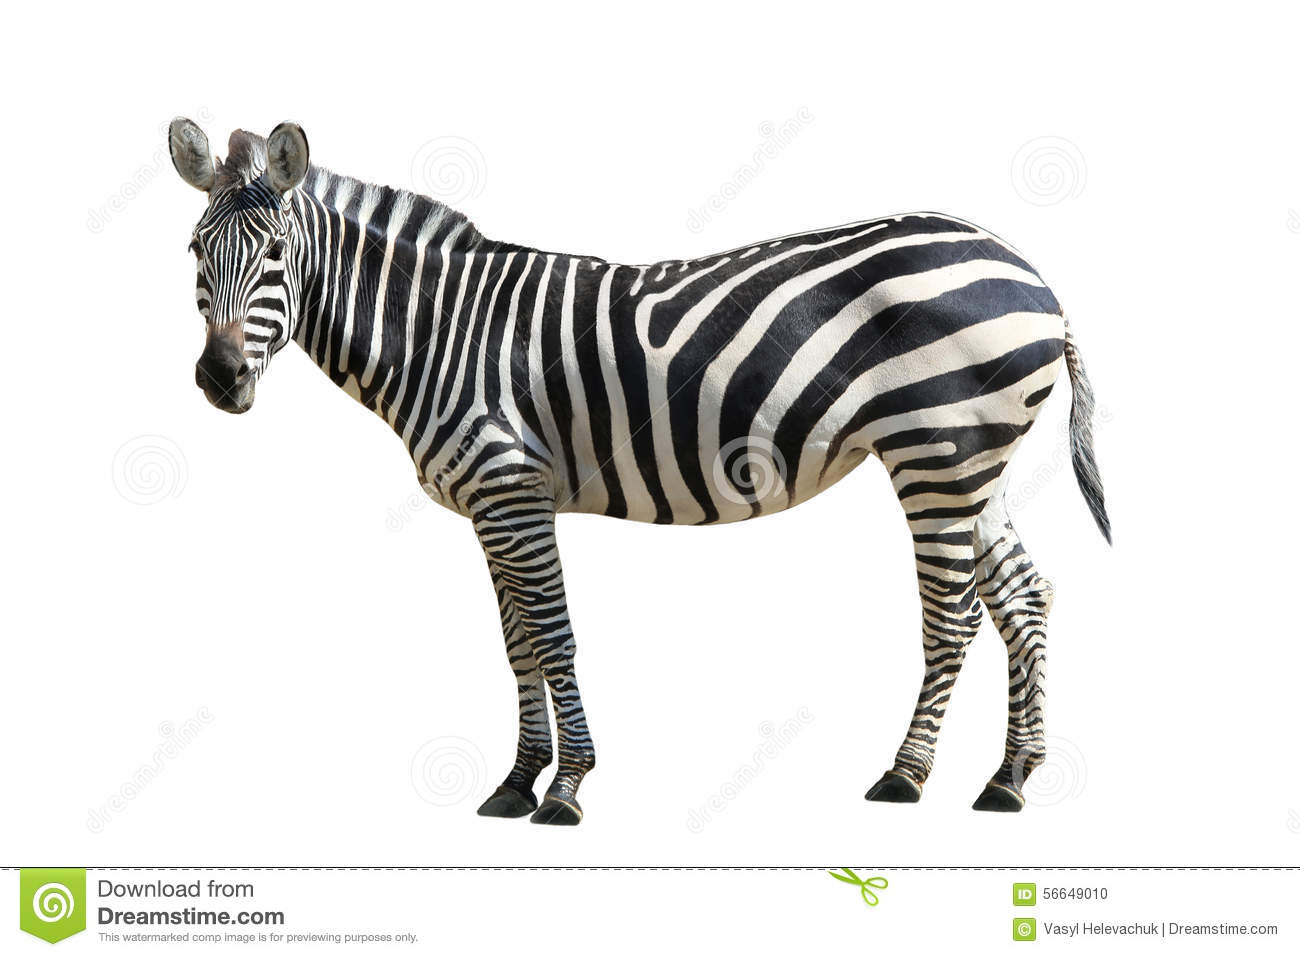 Zebra Stock Photo - Image: 56649010